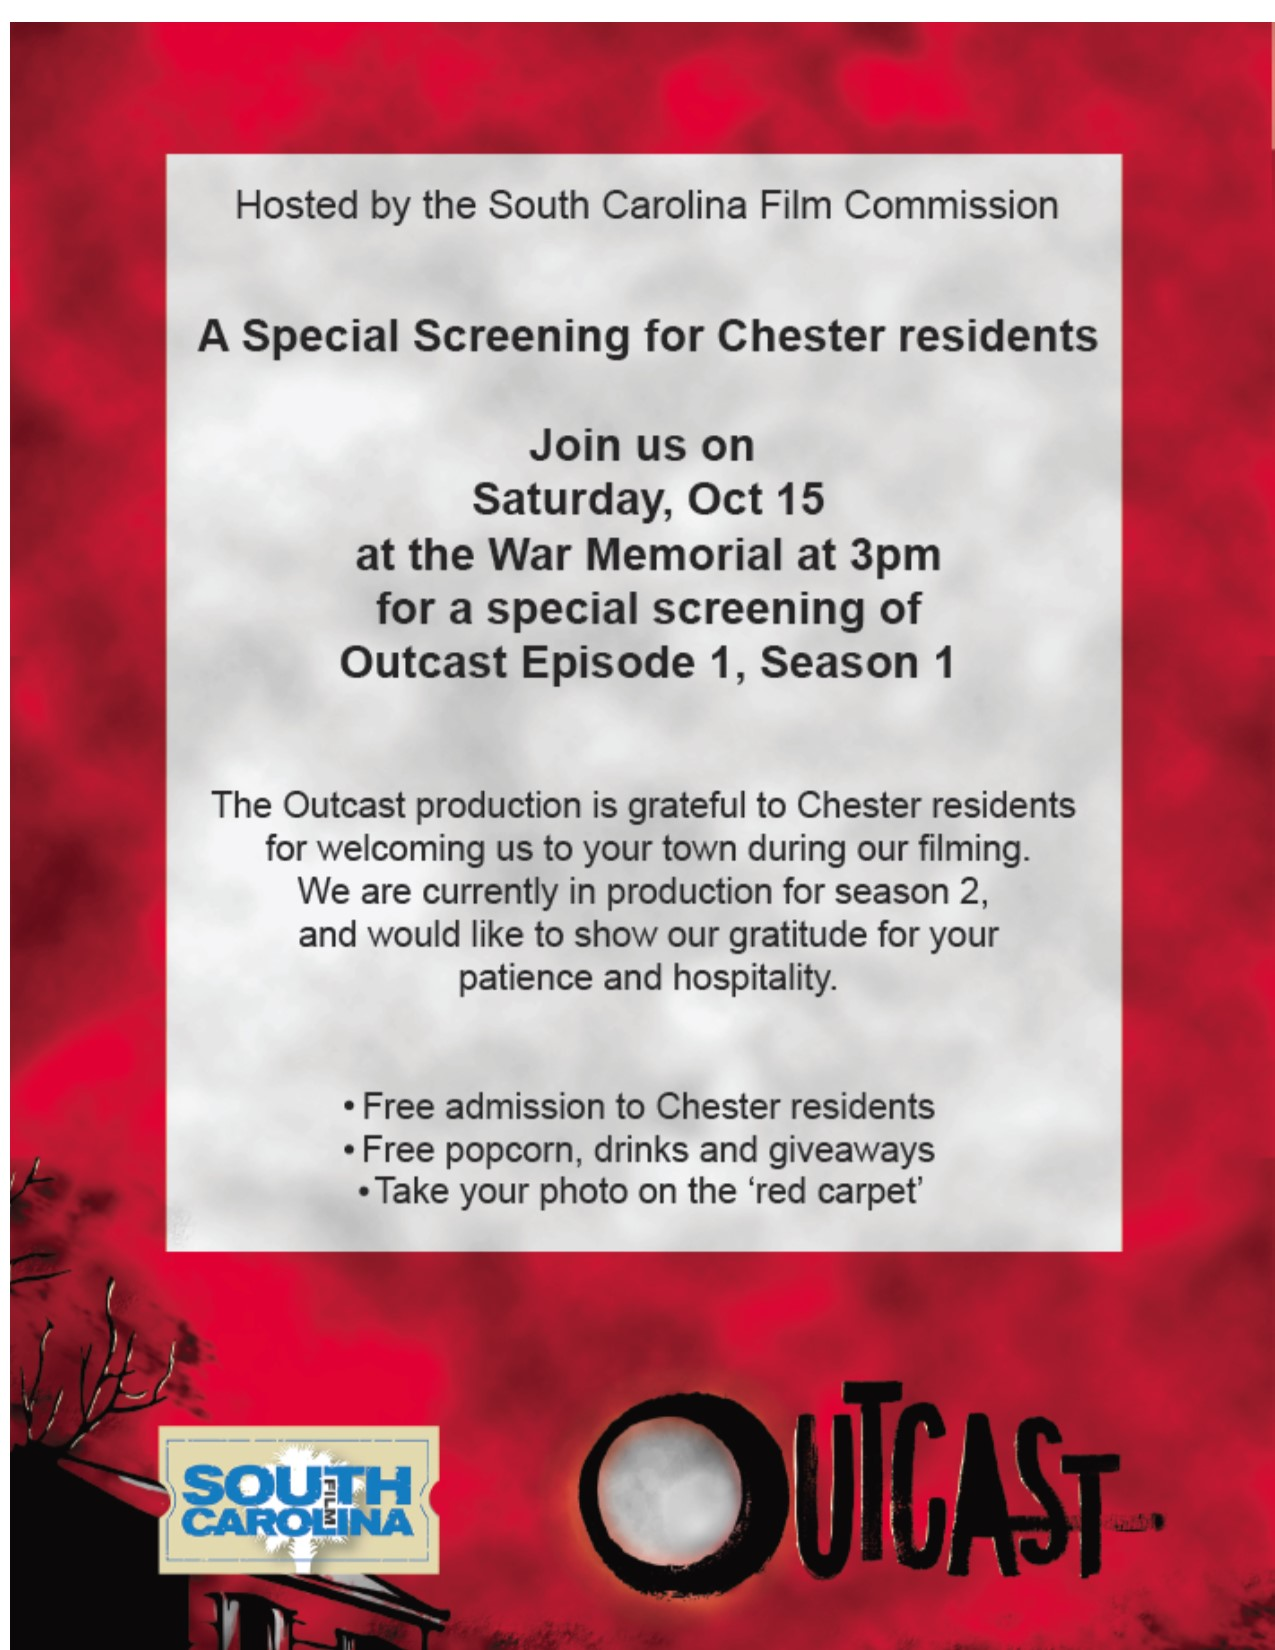 Outcast Screening